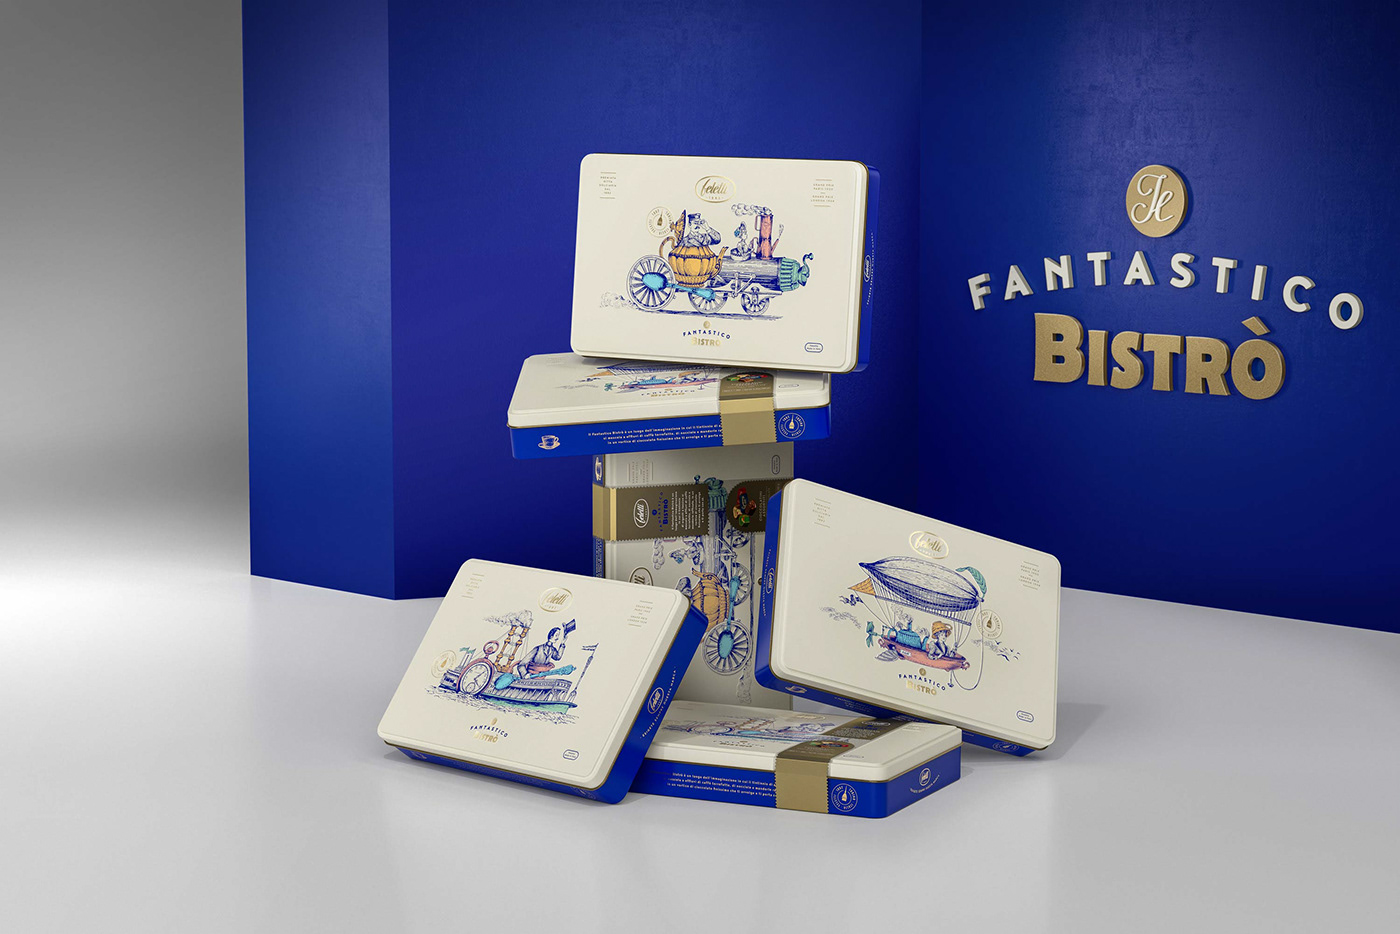 Packaging chocolate vintage graphicdesign ILLUSTRATION  engraving bistro fantasy feletti